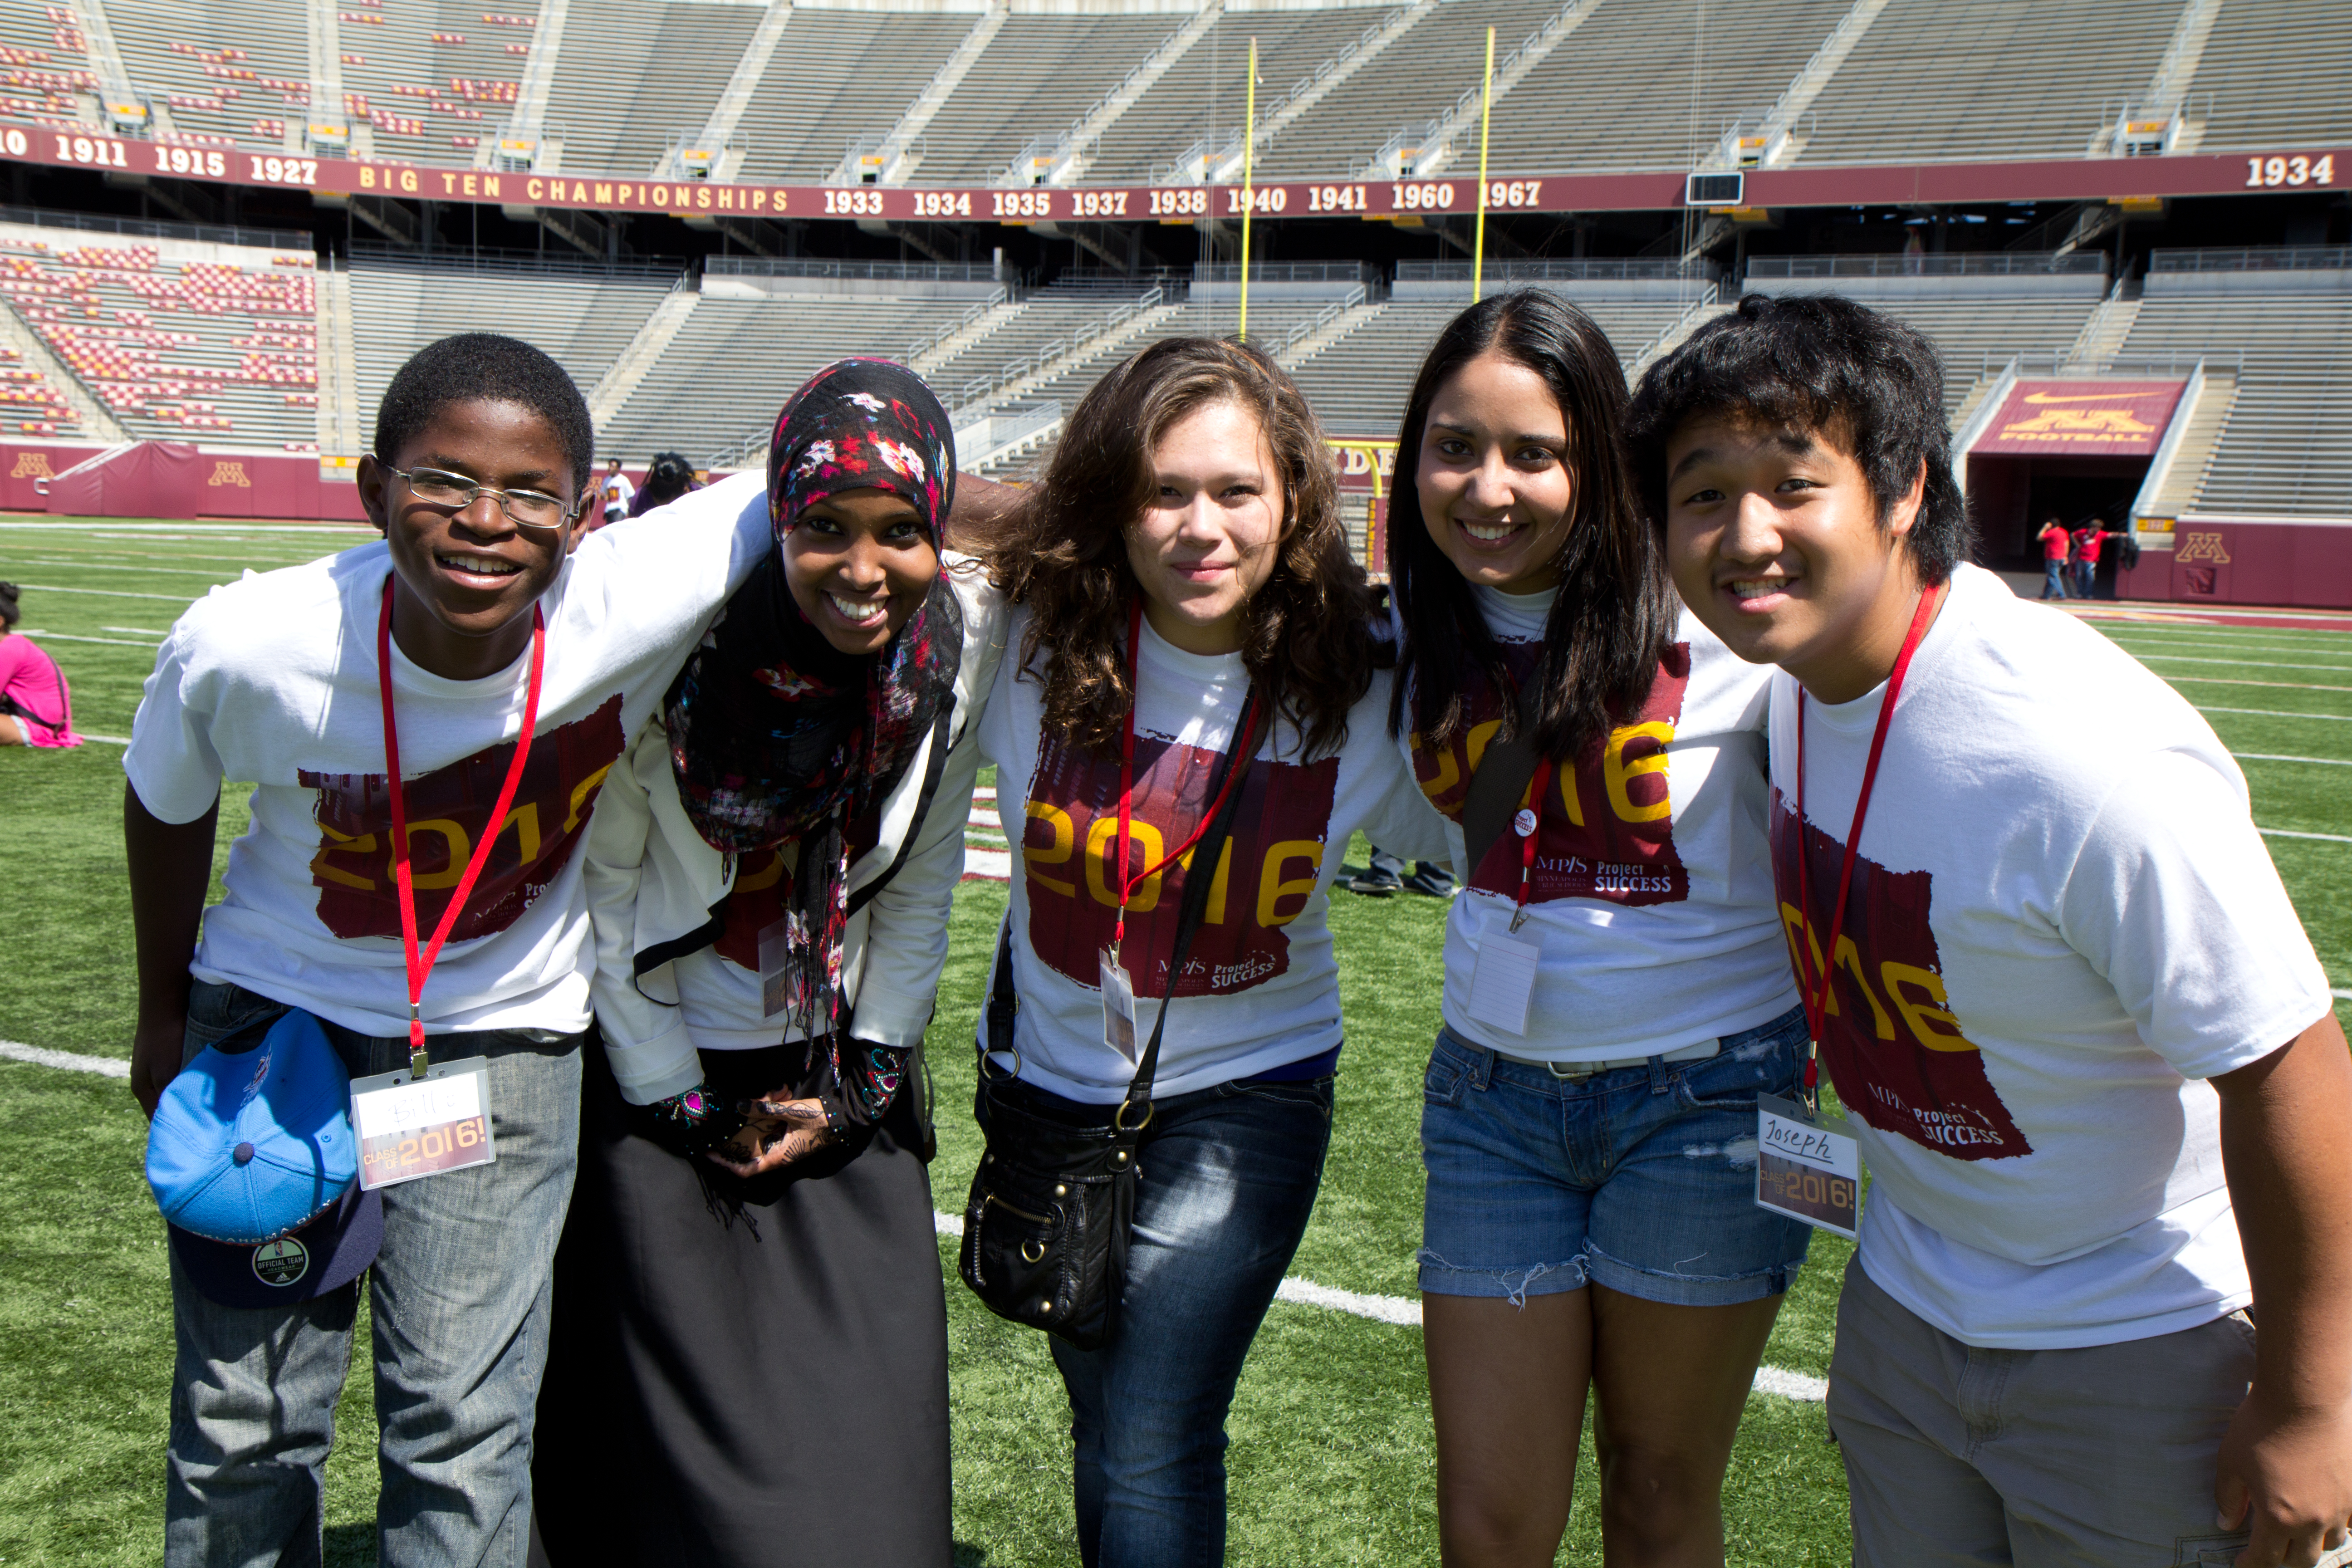 Five Project Success students at an event